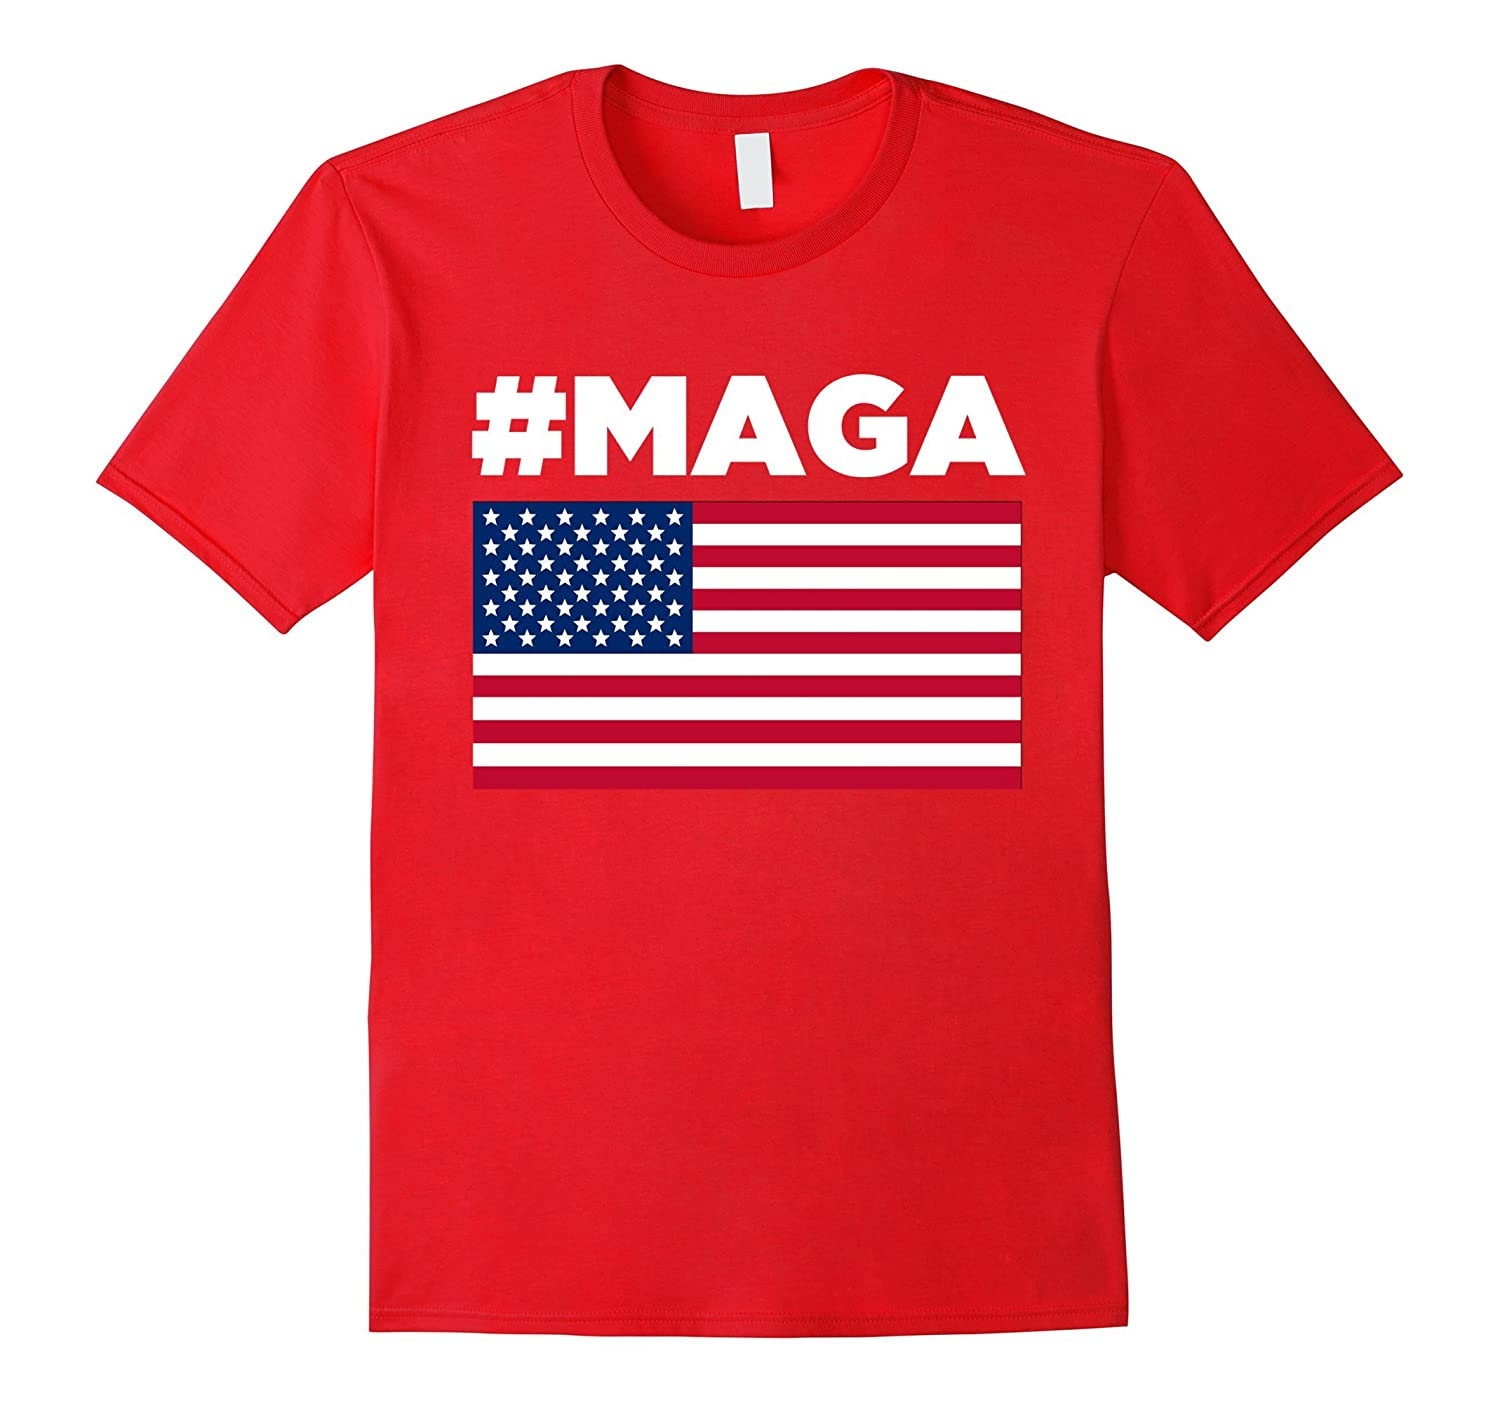 #MAGA T-Shirt - USA Patriotic Donald Trump maga Tee shirt-RT